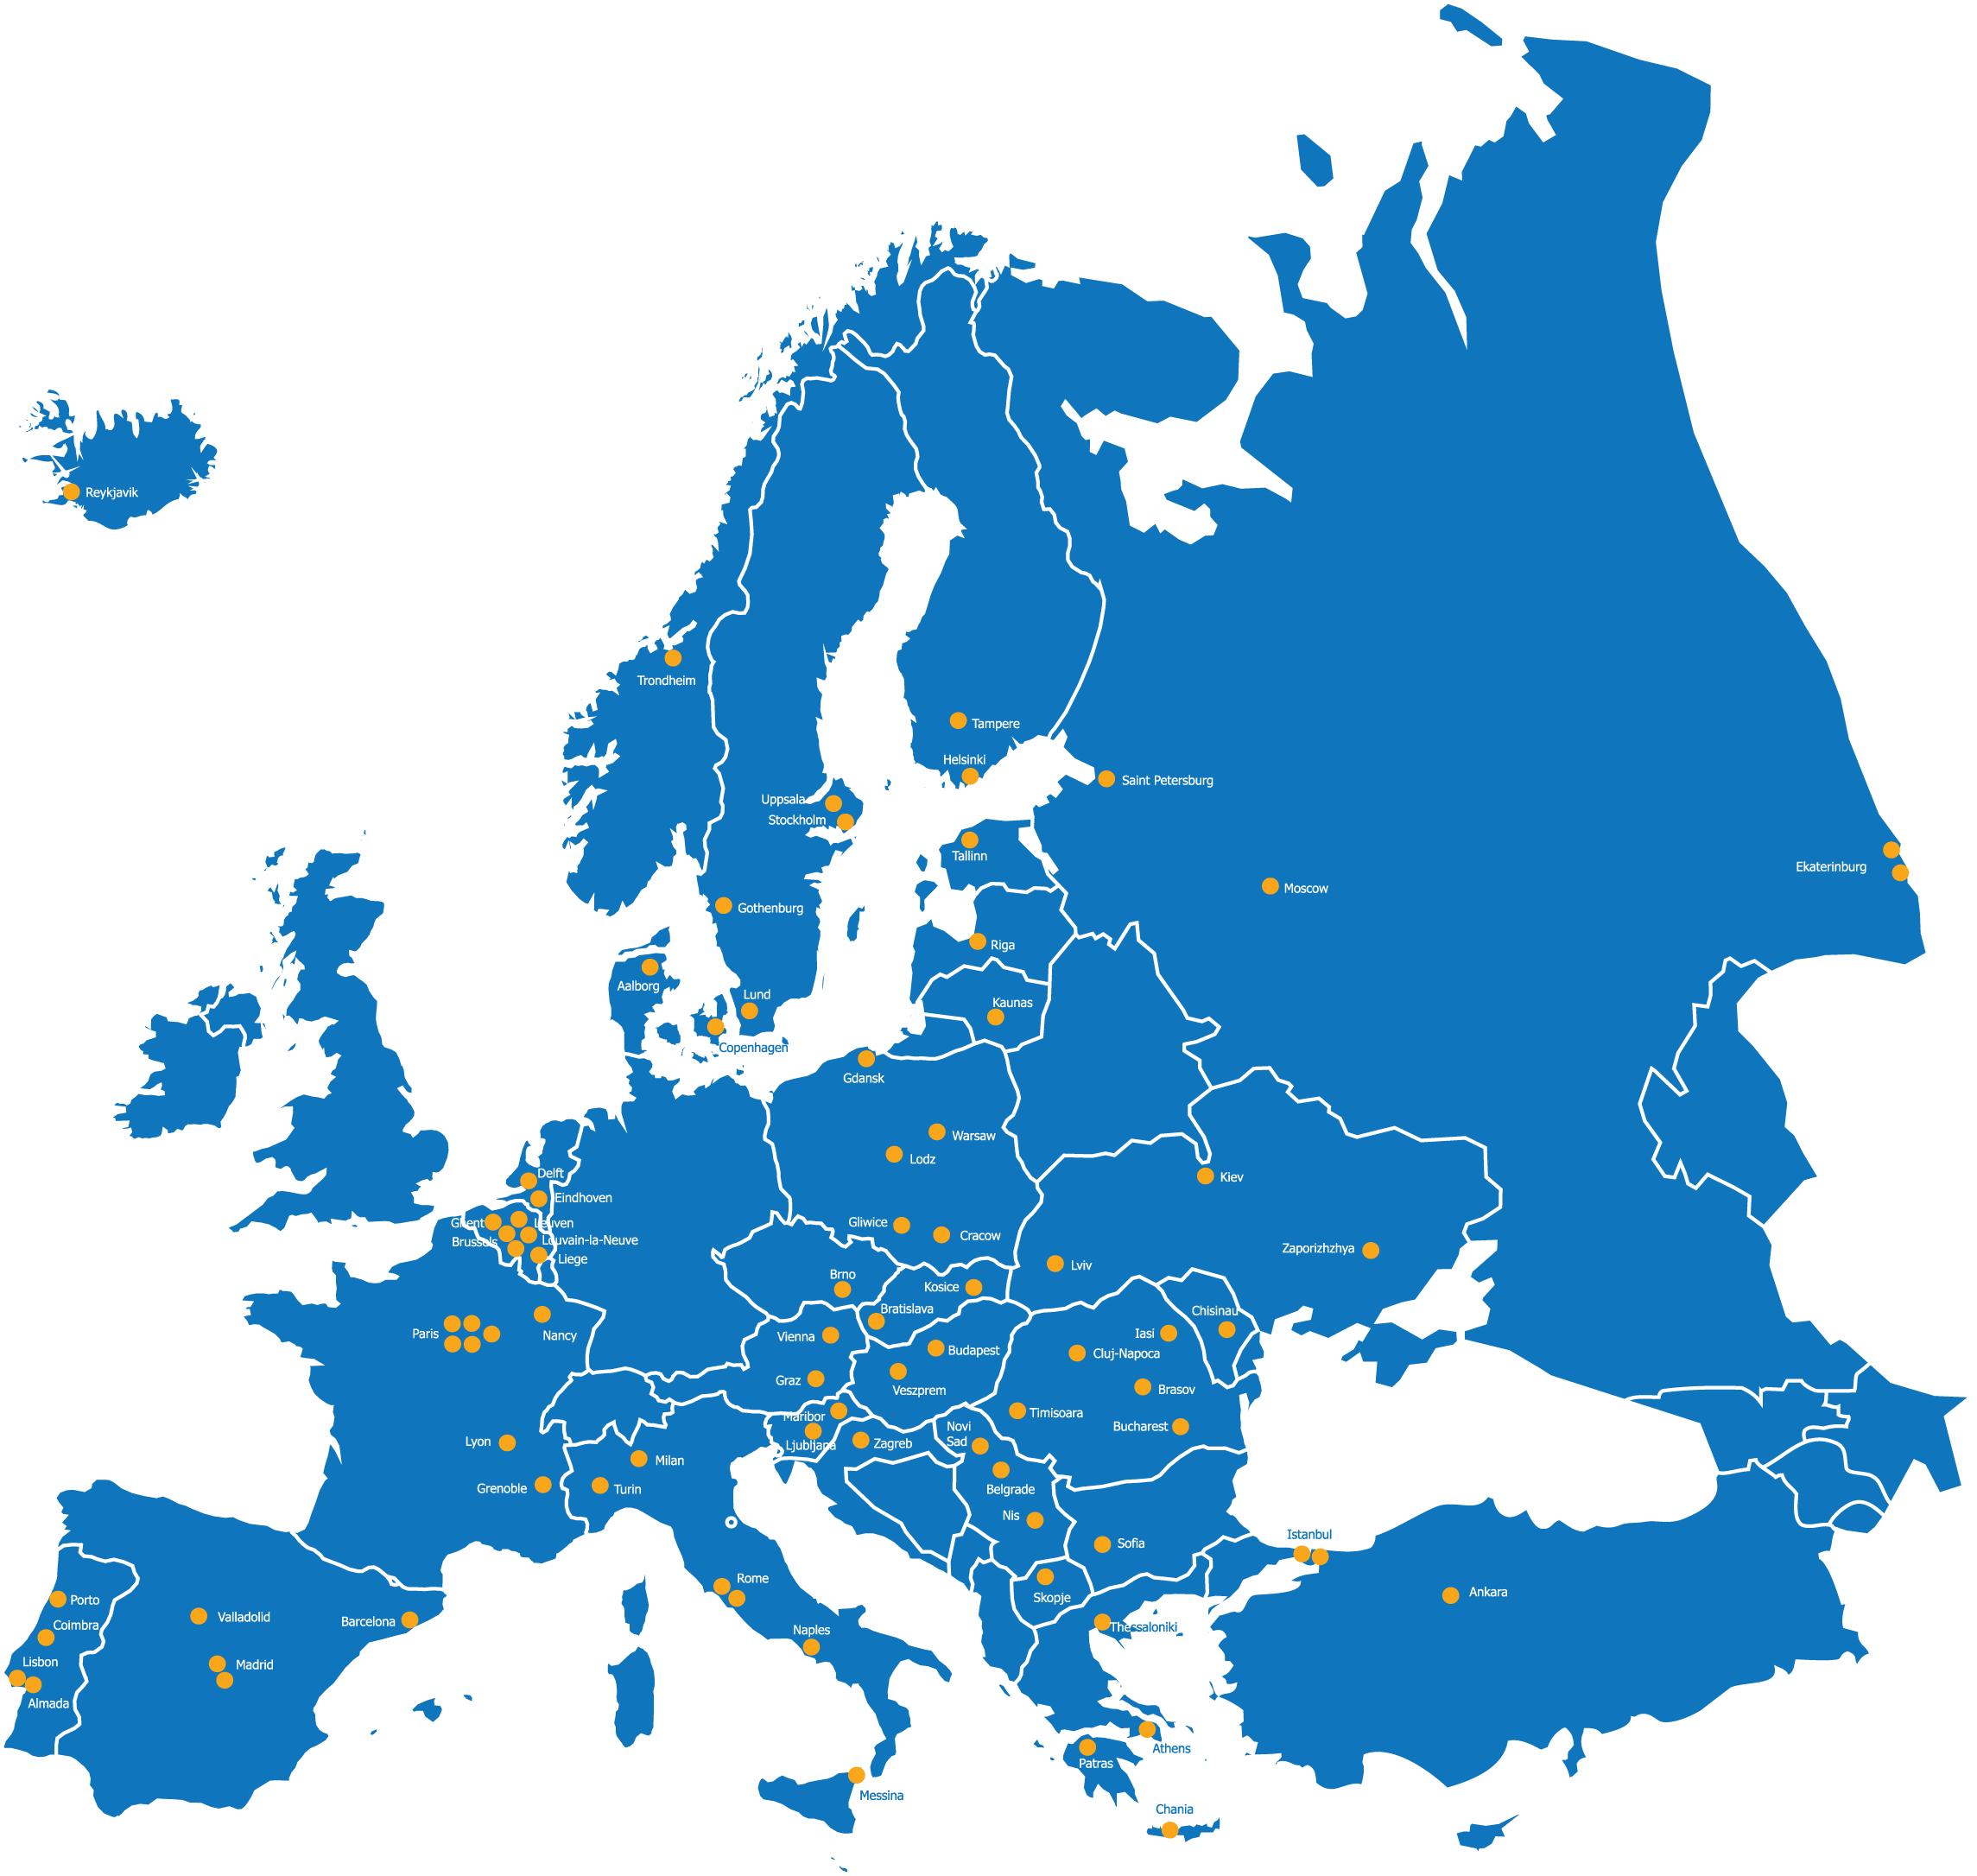 File:BEST map of Europe with townnames.png.